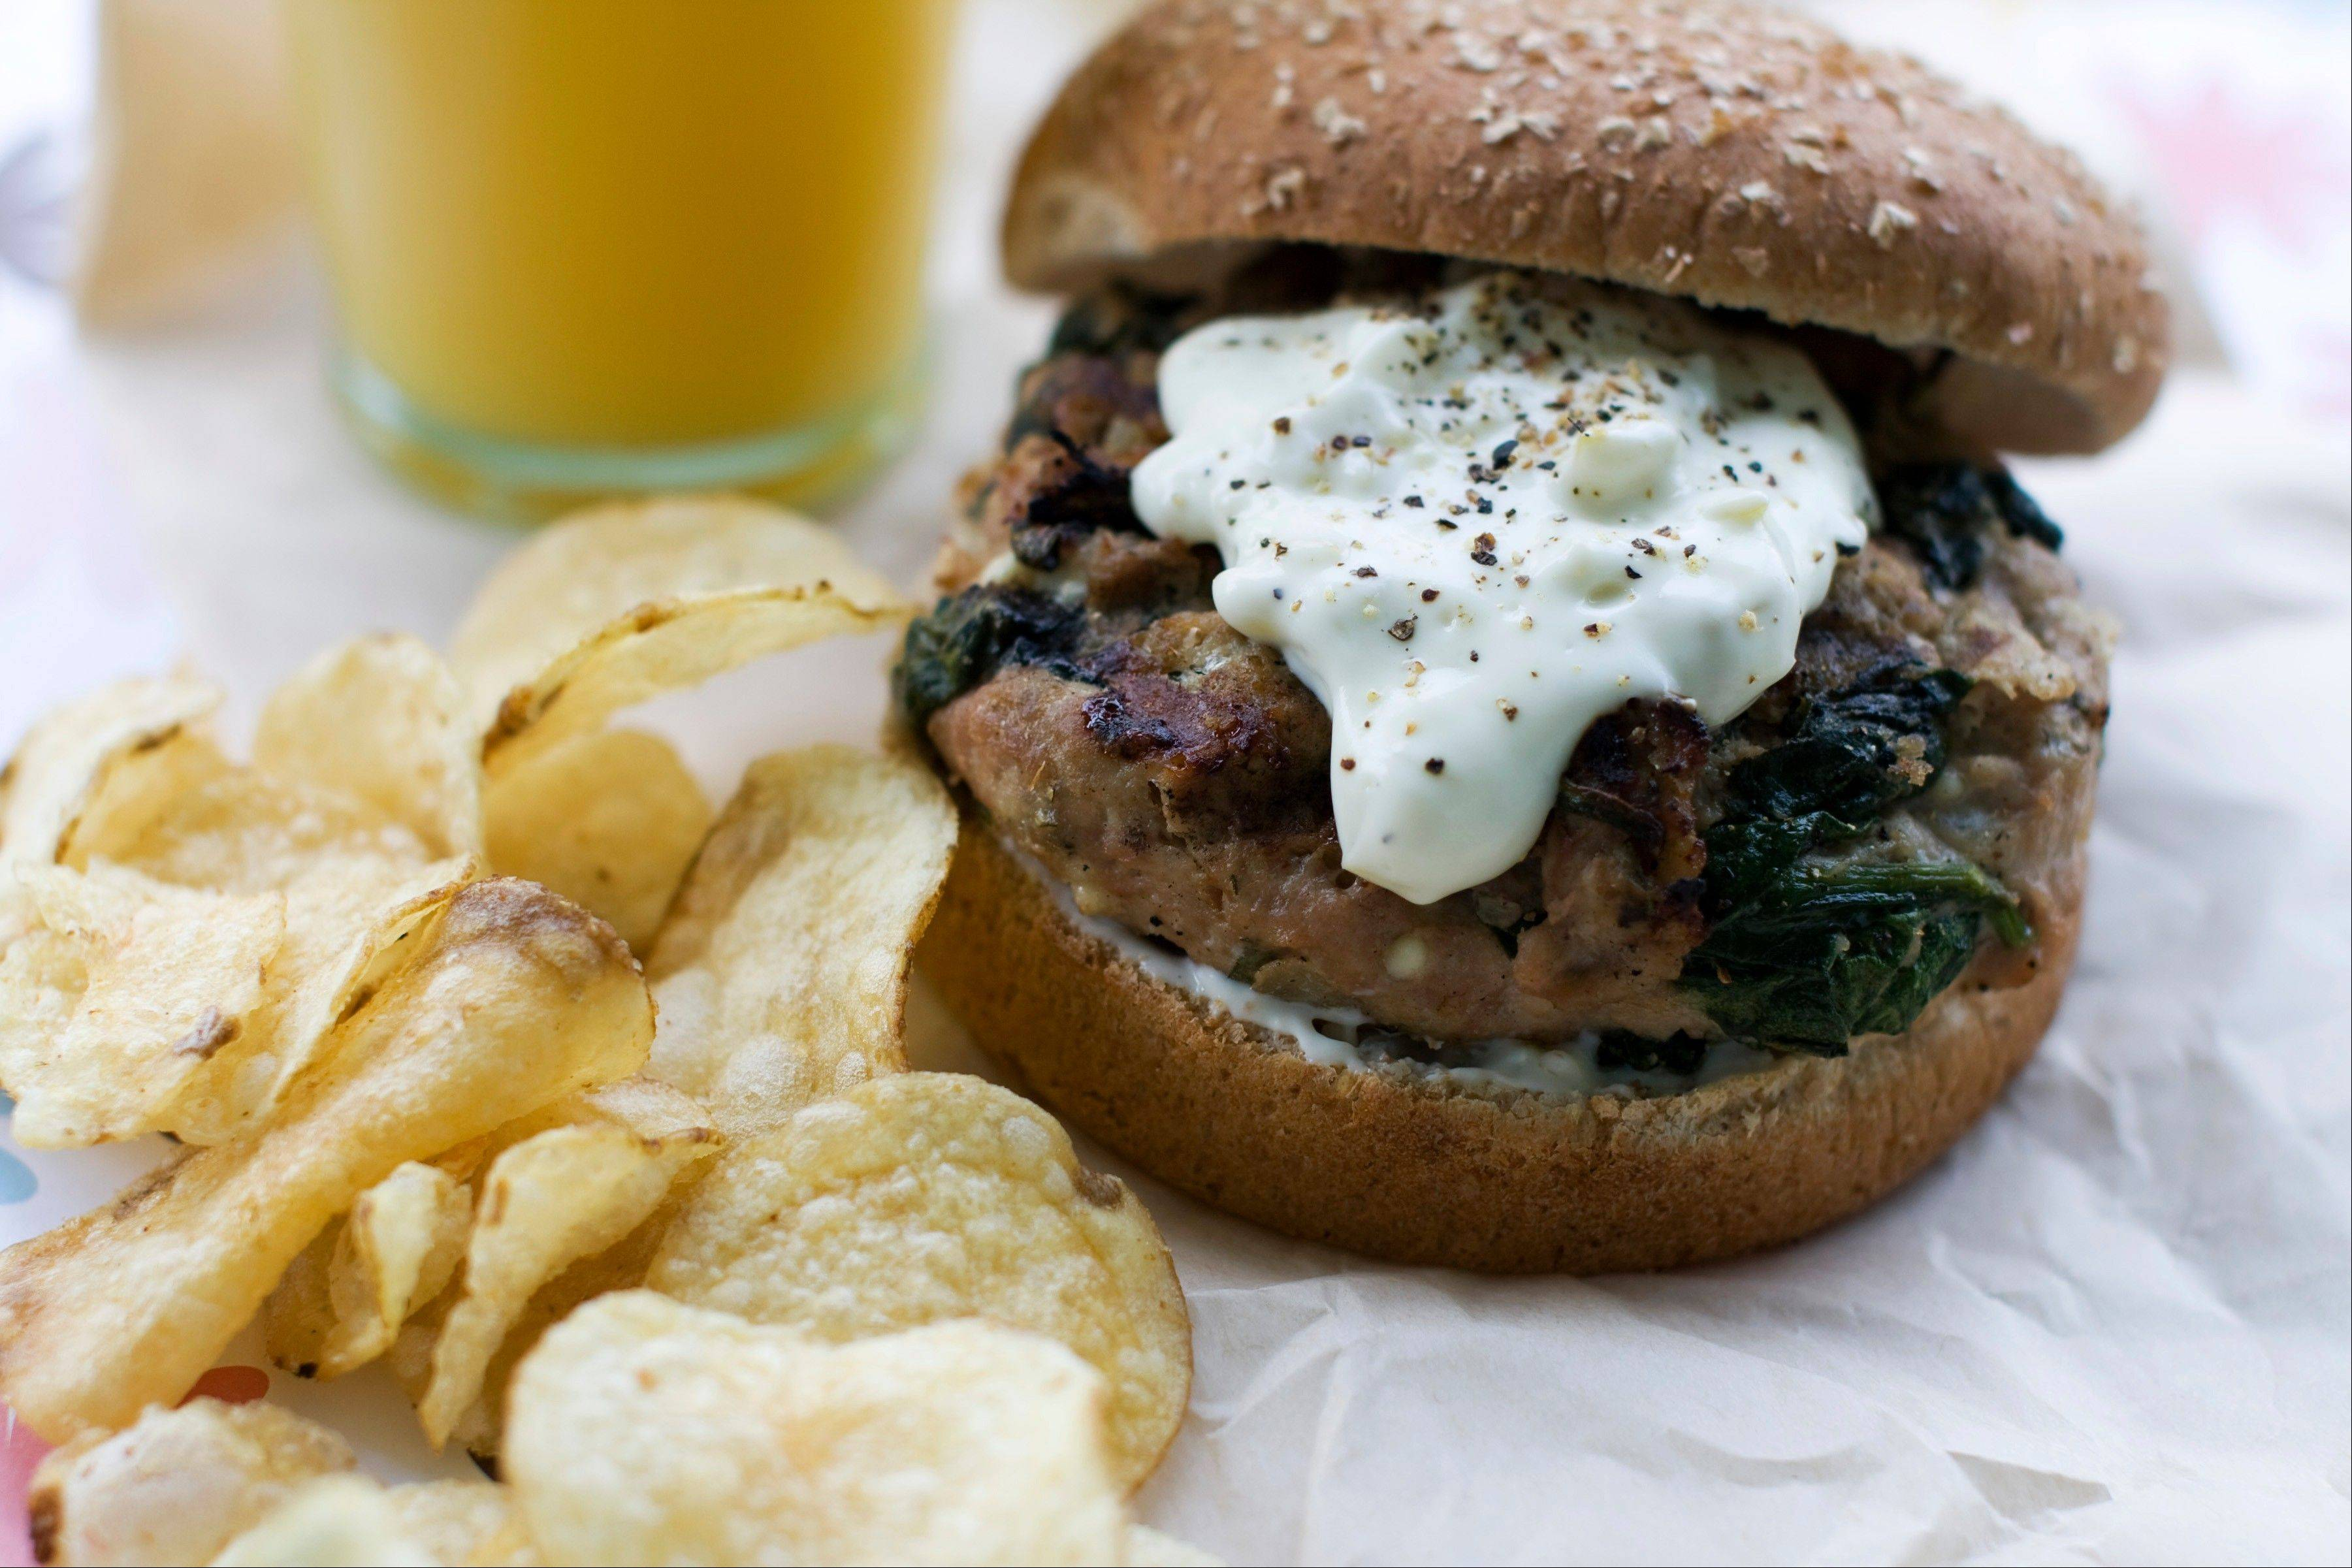 Spinach and onion blended into ground turkey give this burger a Greek flare.